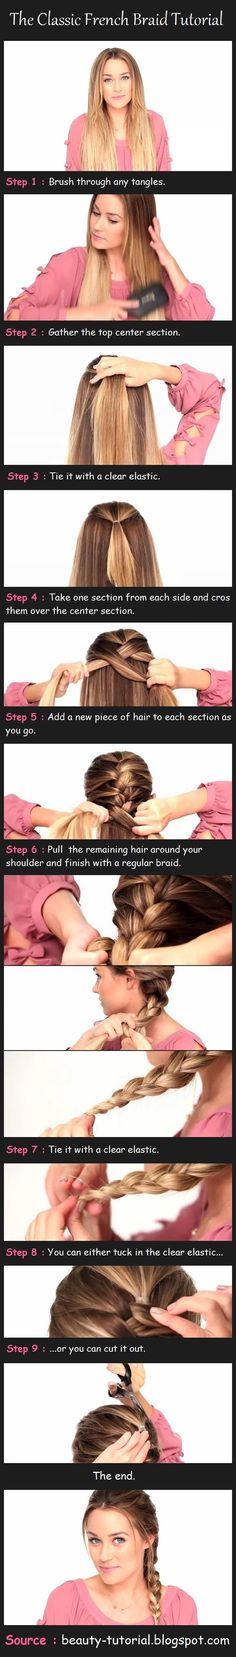 Omg! Where has this tutorial been all my life!?